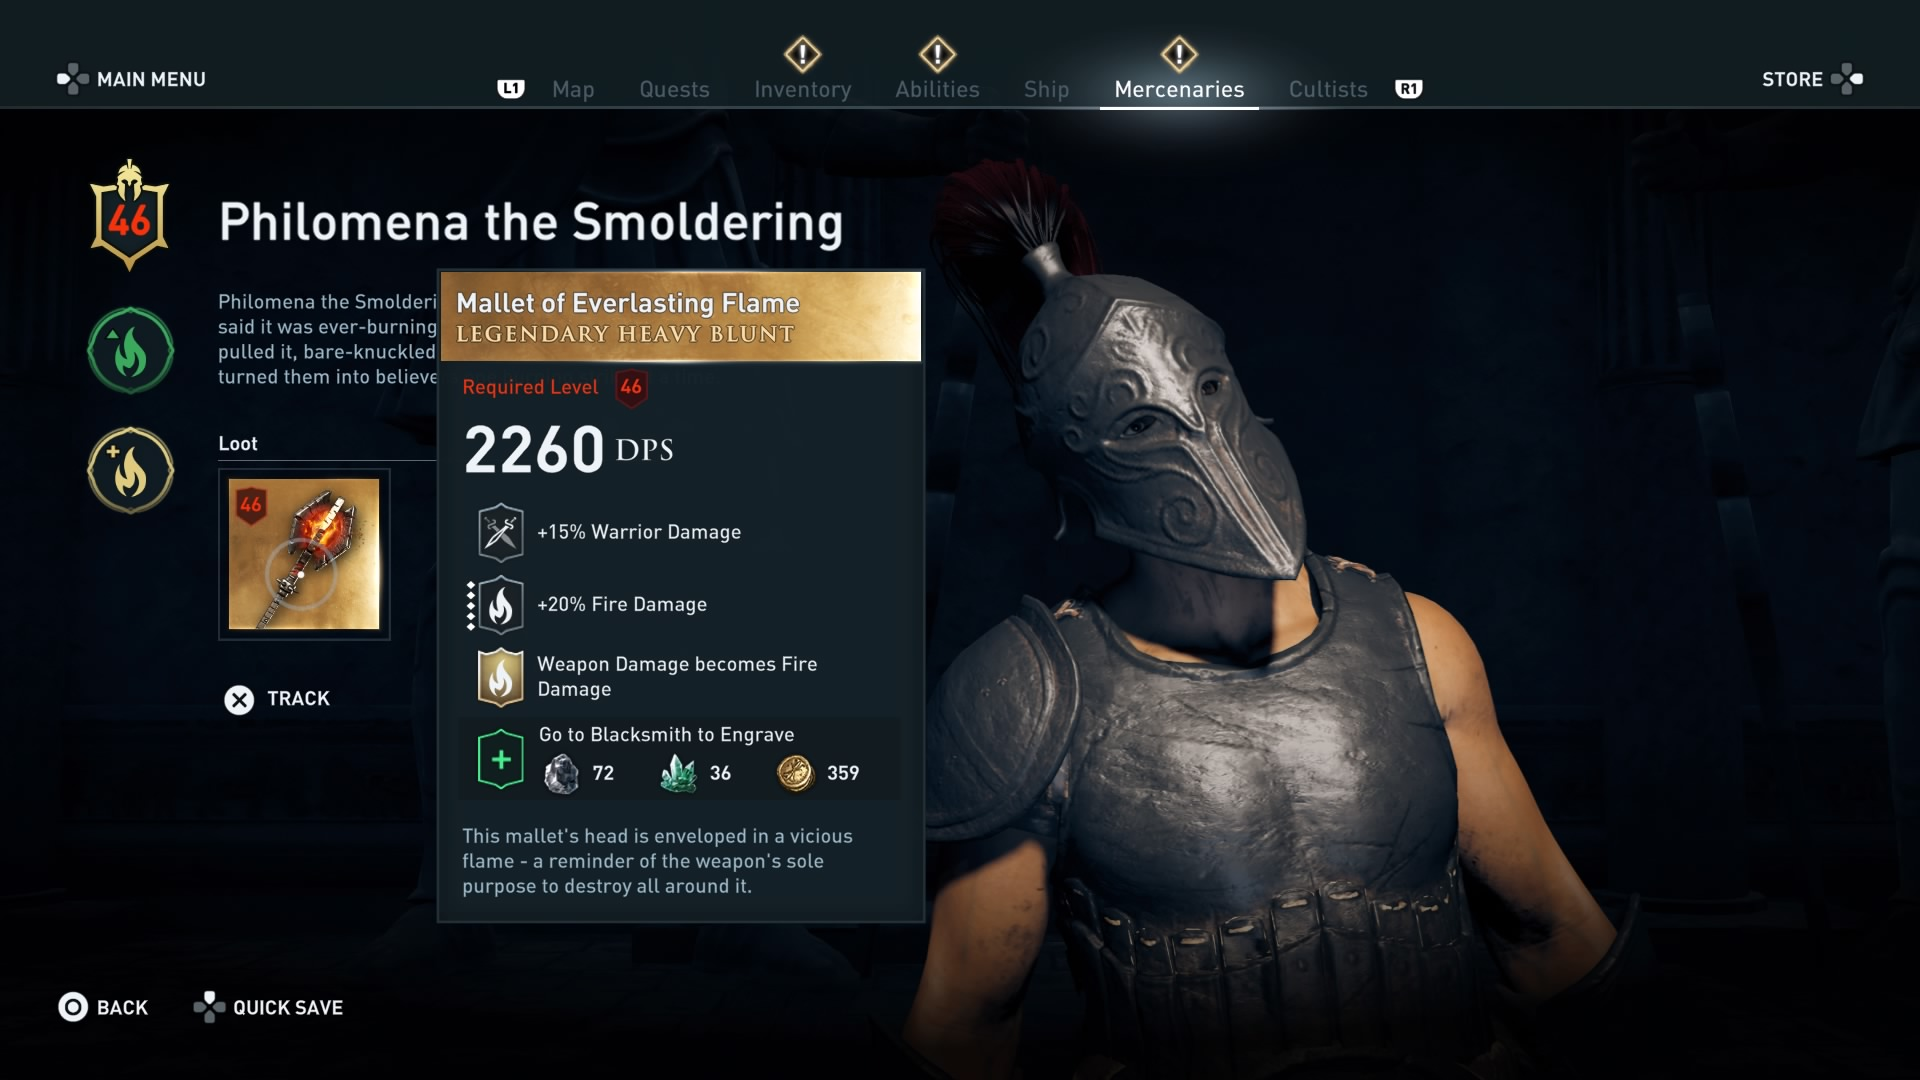 Assassin S Creed Odyssey Finest Weapons For The Early Mid And